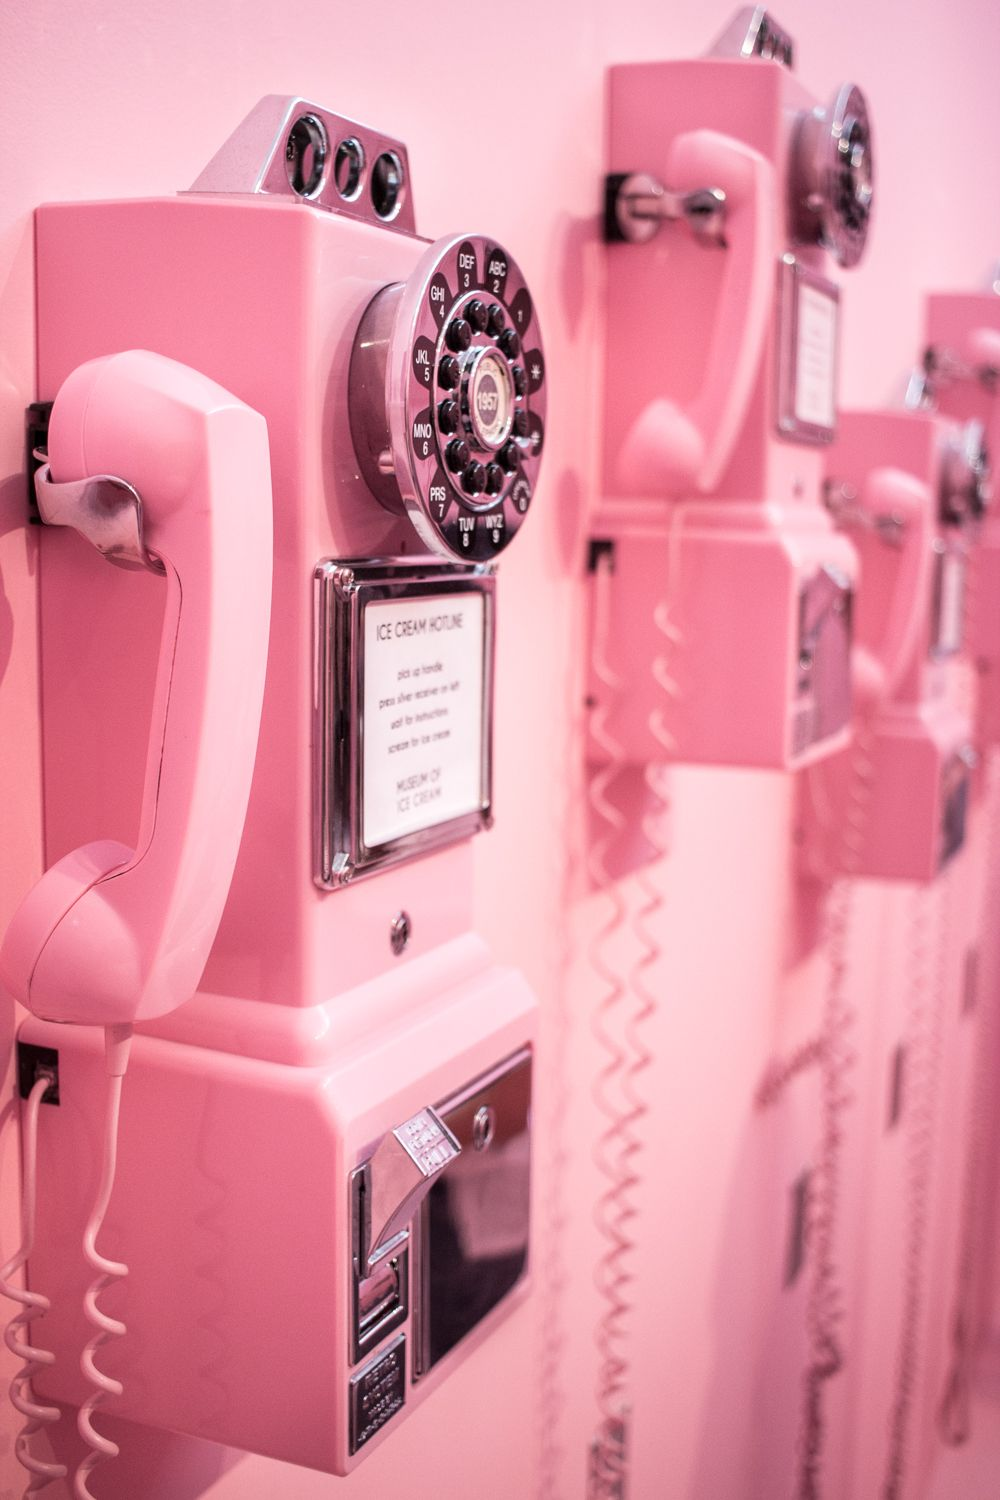 Museum of Ice Cream // Photos from the Insta-Famous Traveling Pop-Up